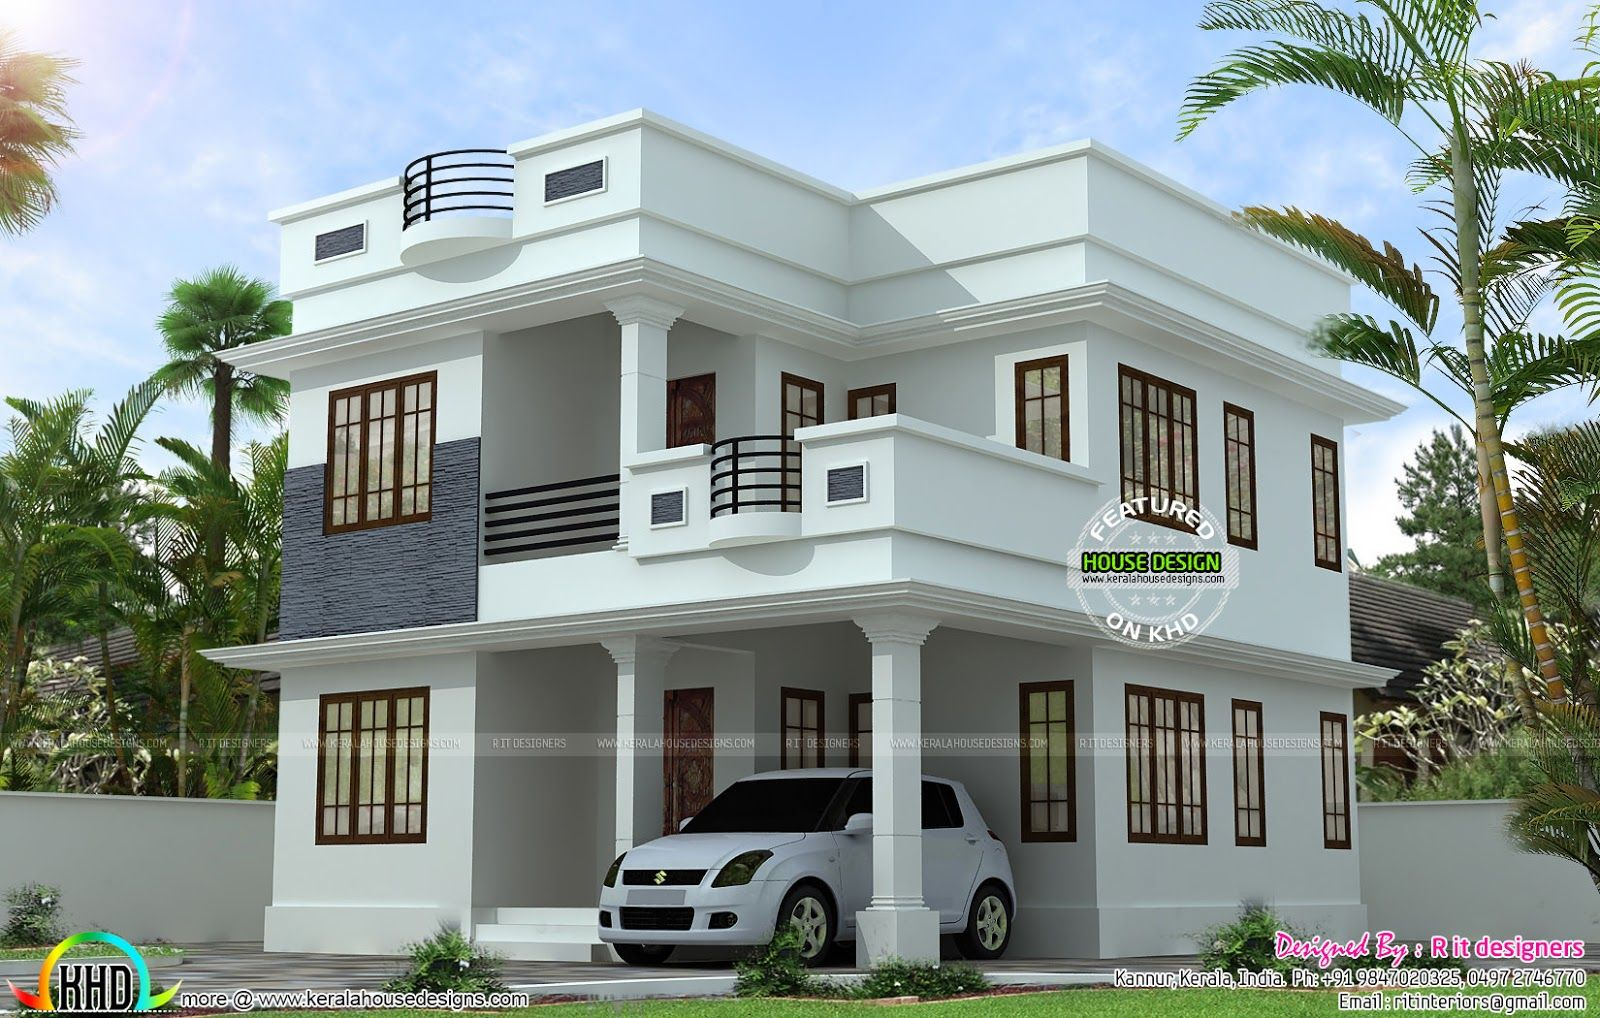 House Desings Captivating Picture Gallery Of Kerala Houses  House Plans And Ideas Inspiration